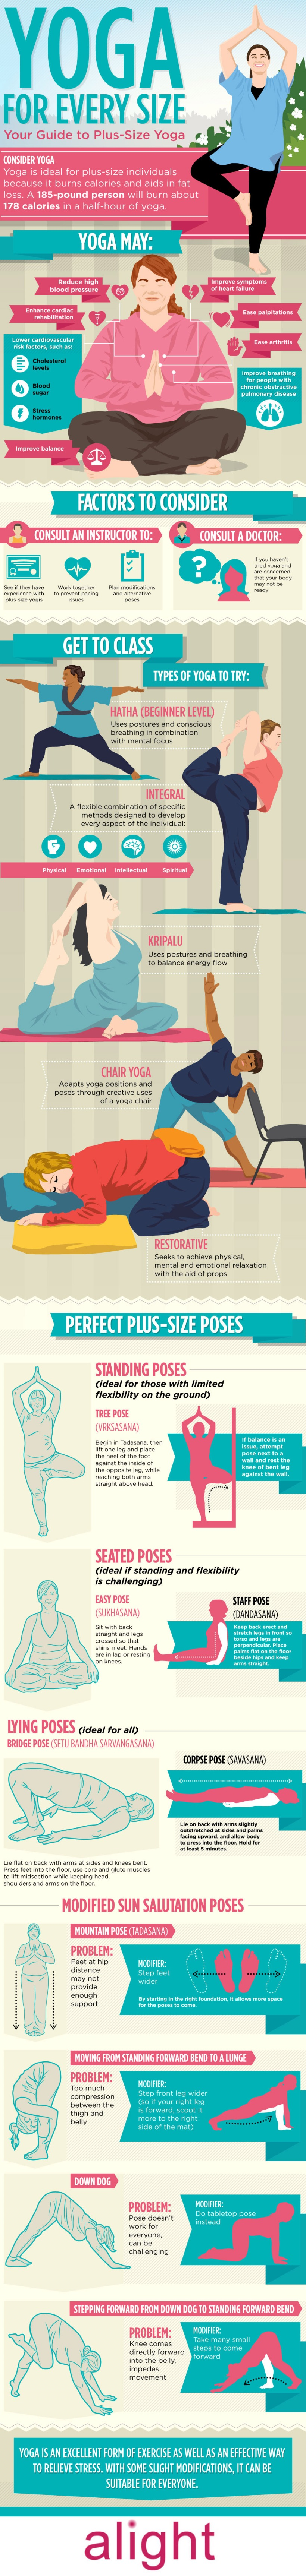 plus-size-yoga